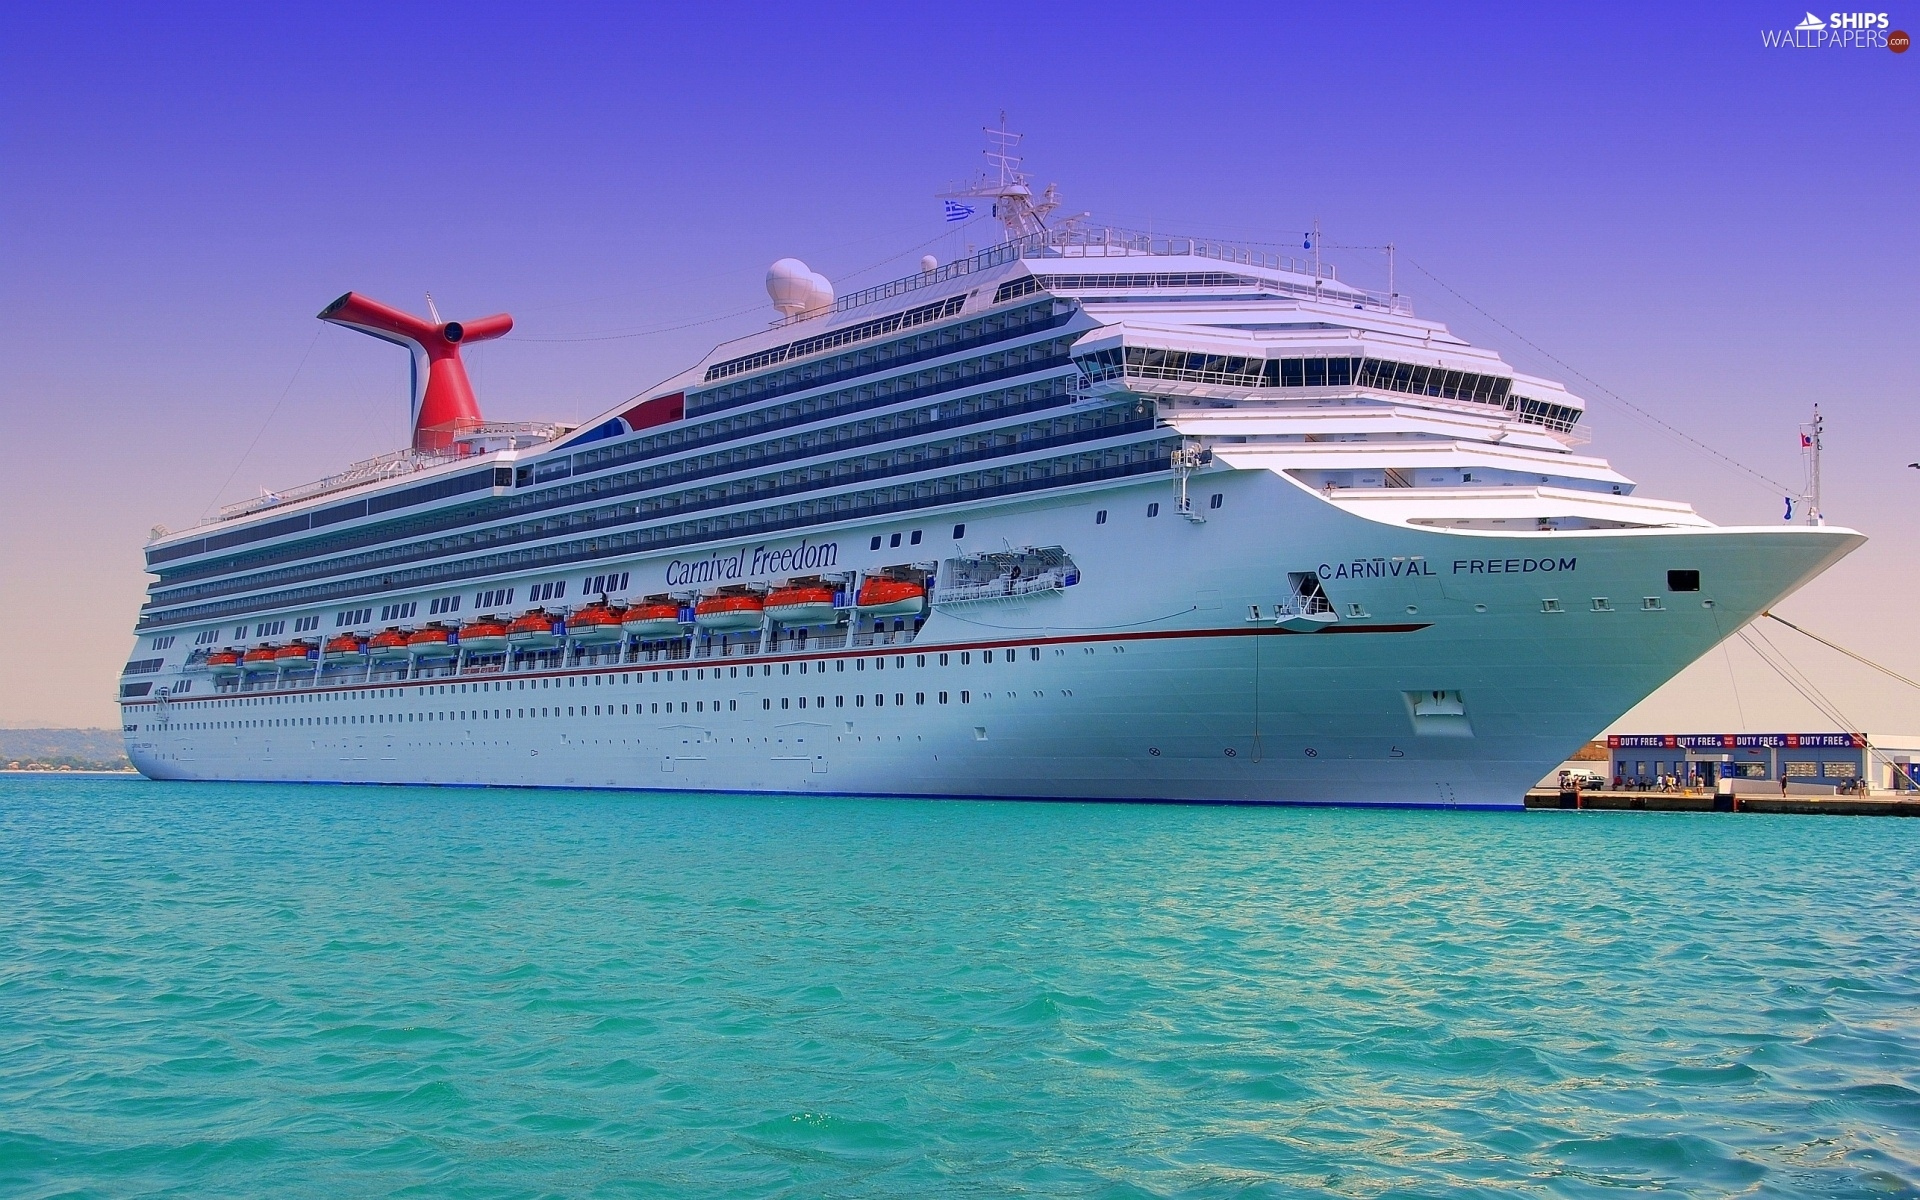 water, Carnival Freedom, cruise, azure, Ship